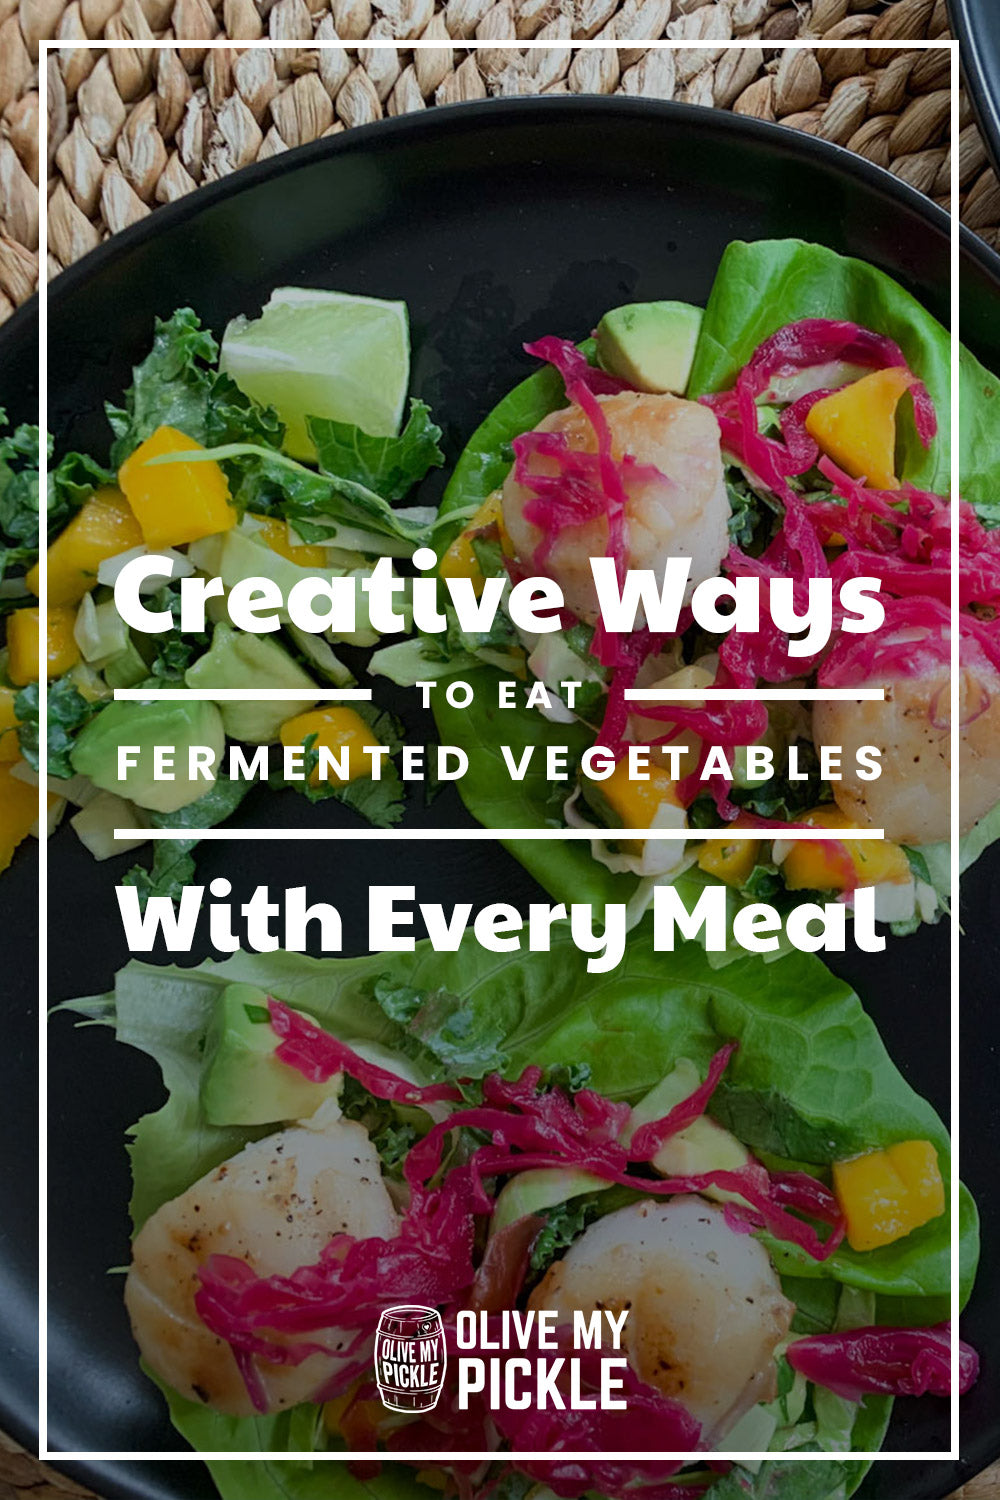 Creative Ways to Eat Fermented Vegetables with Every Meal